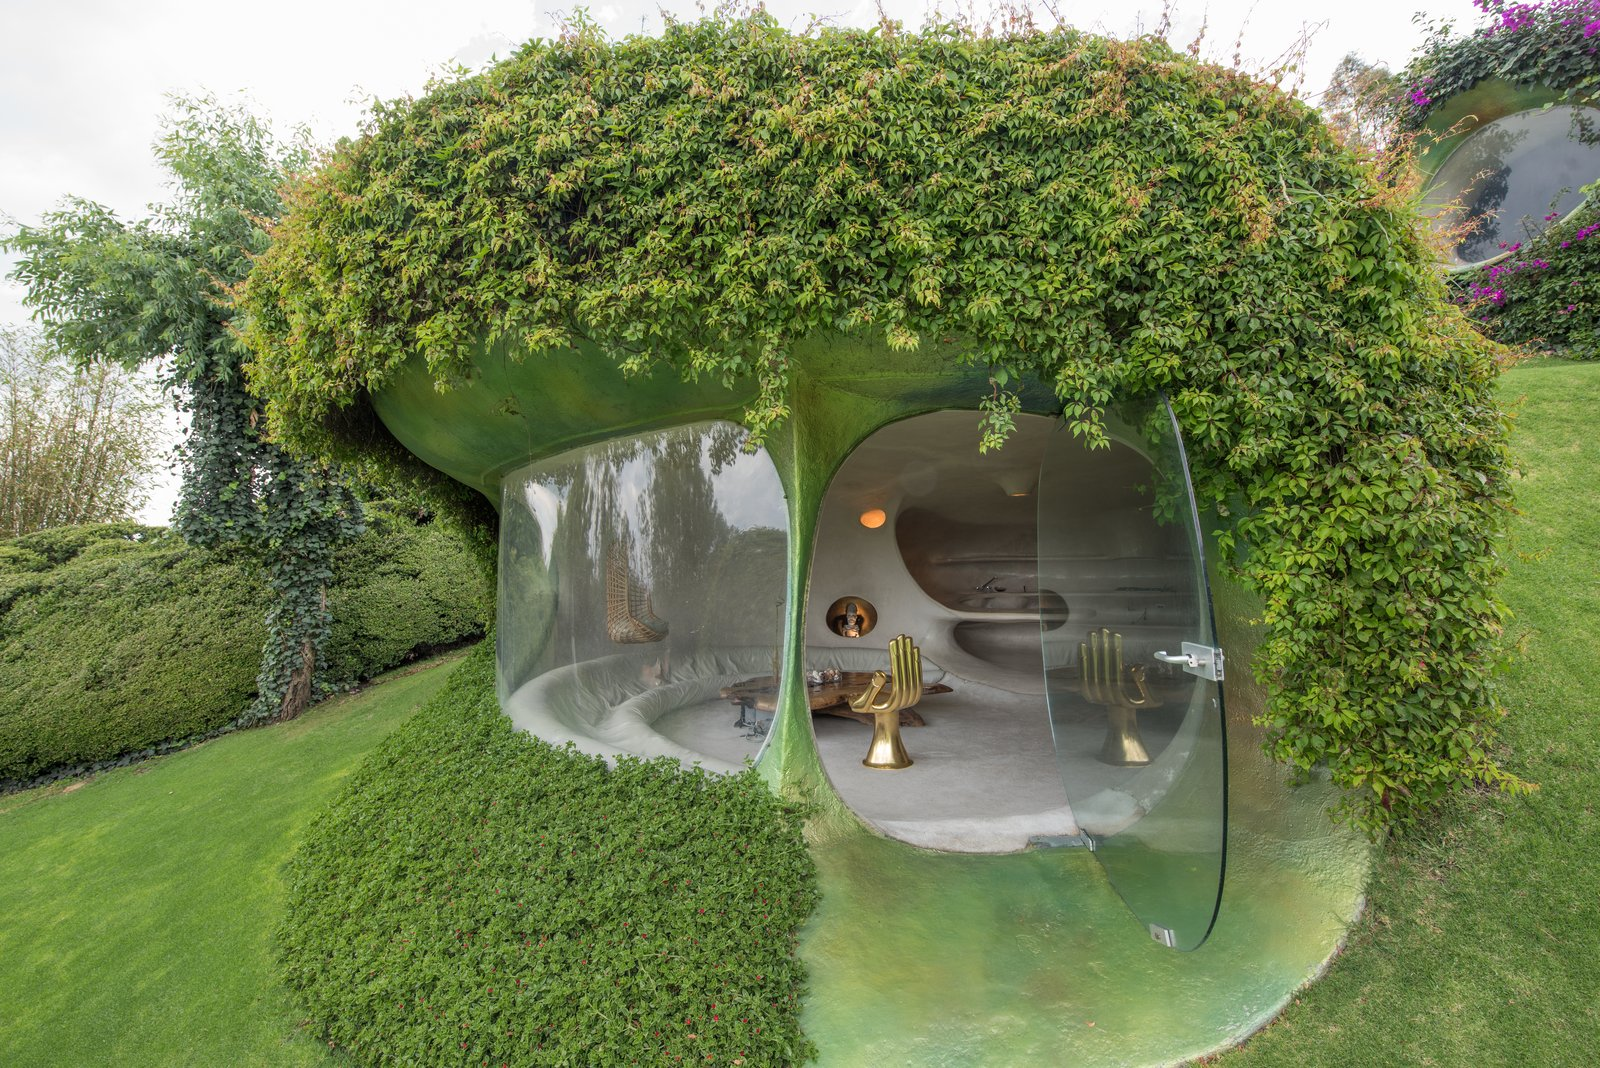 This Lush, Underground Home Is a Hideaway Fit For a Hobbit